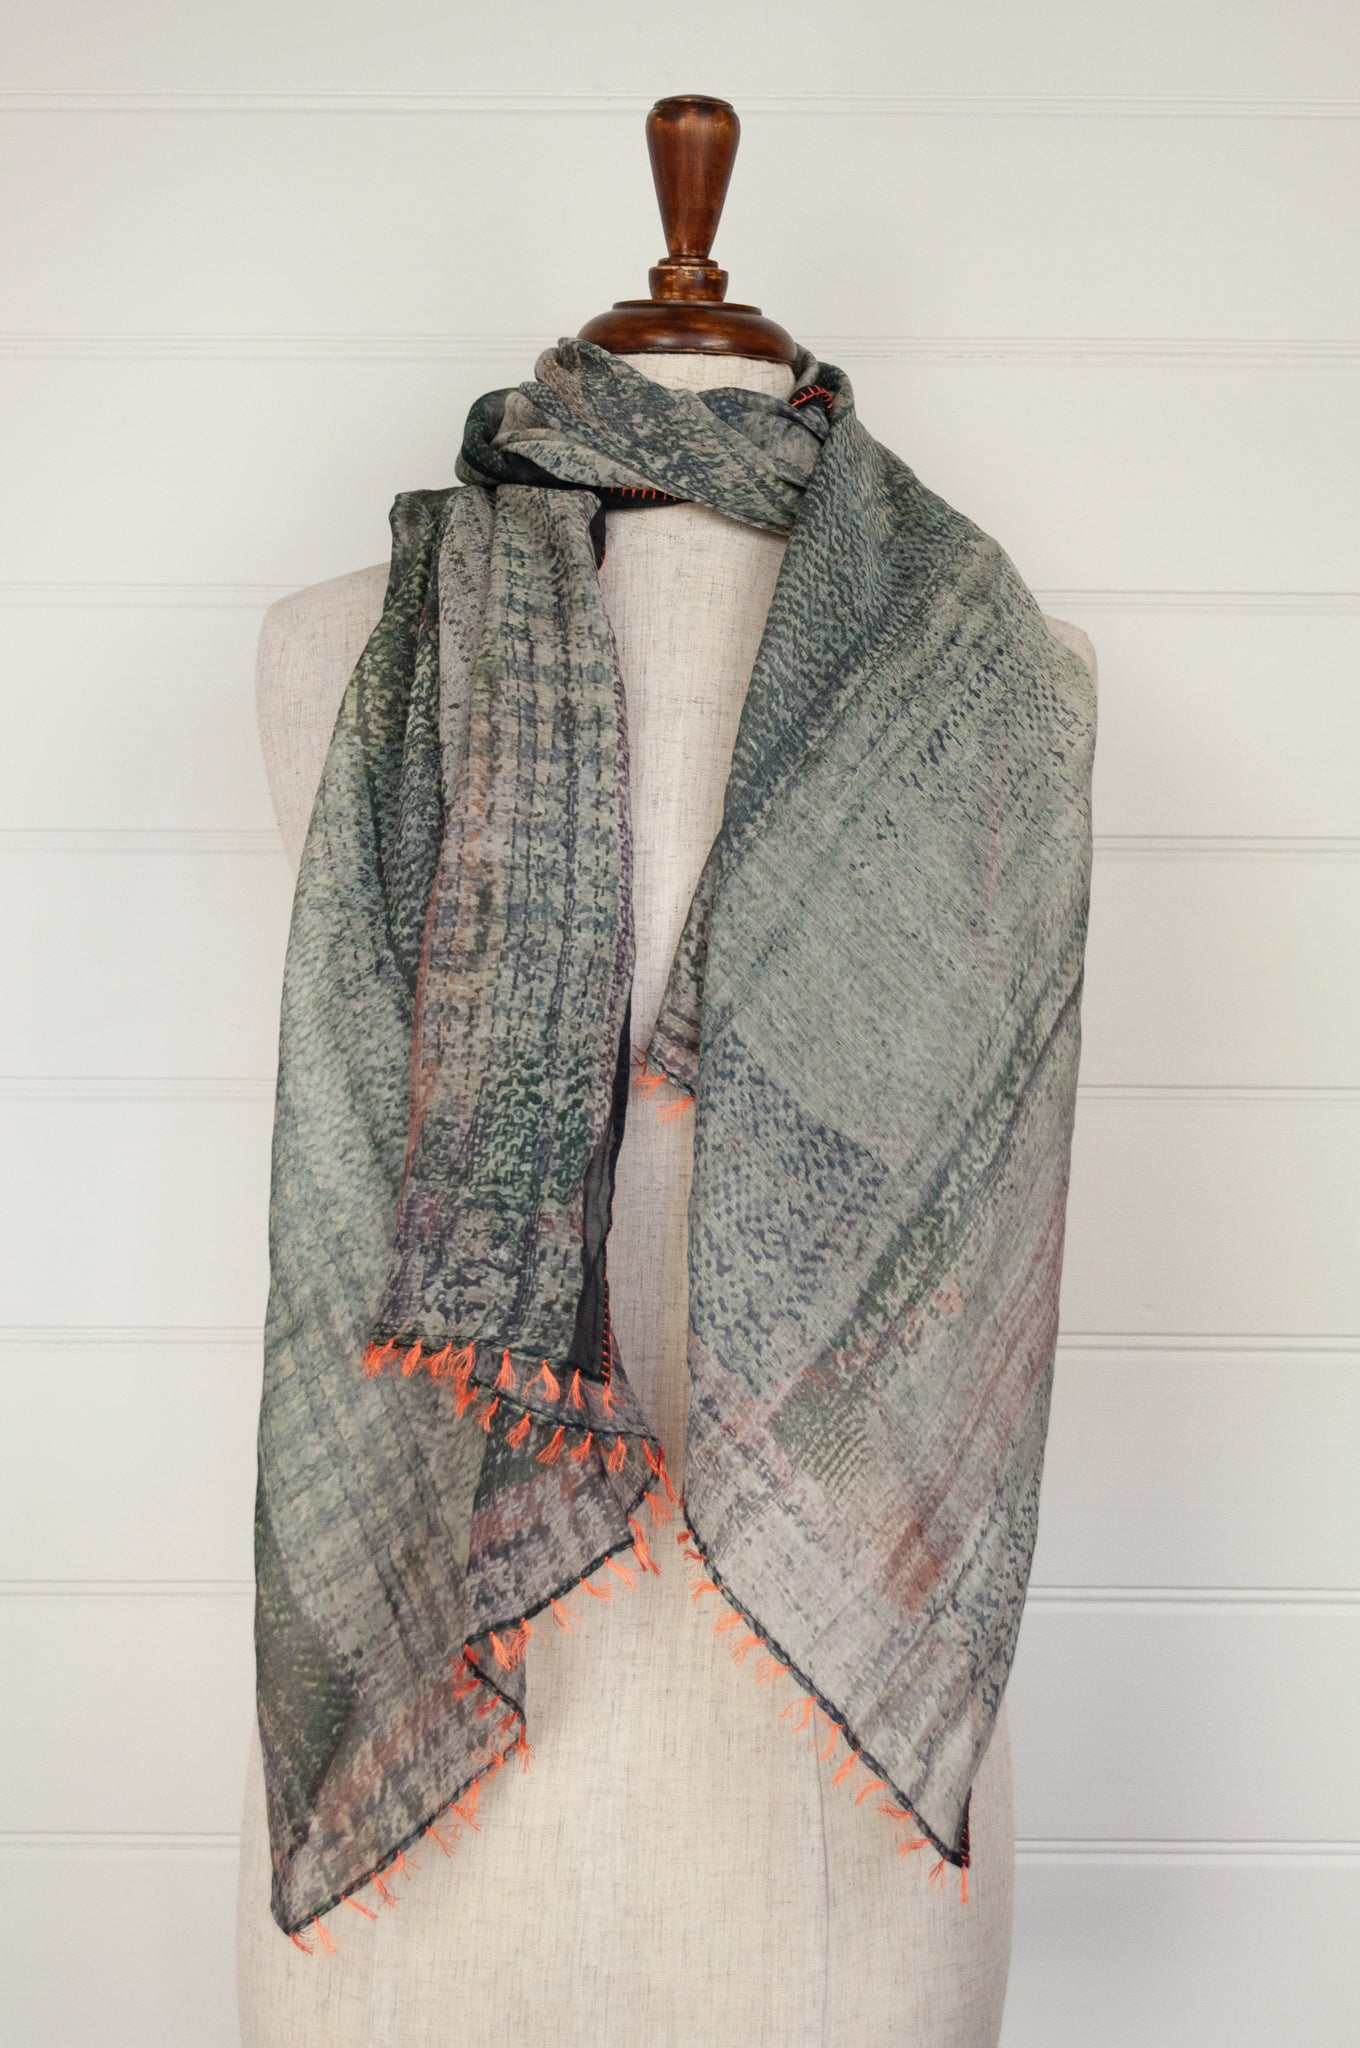 Neeru Kumar digital print cotton silk scarf in shades of grey green and silver with orange button hole edge stitching and tassels.